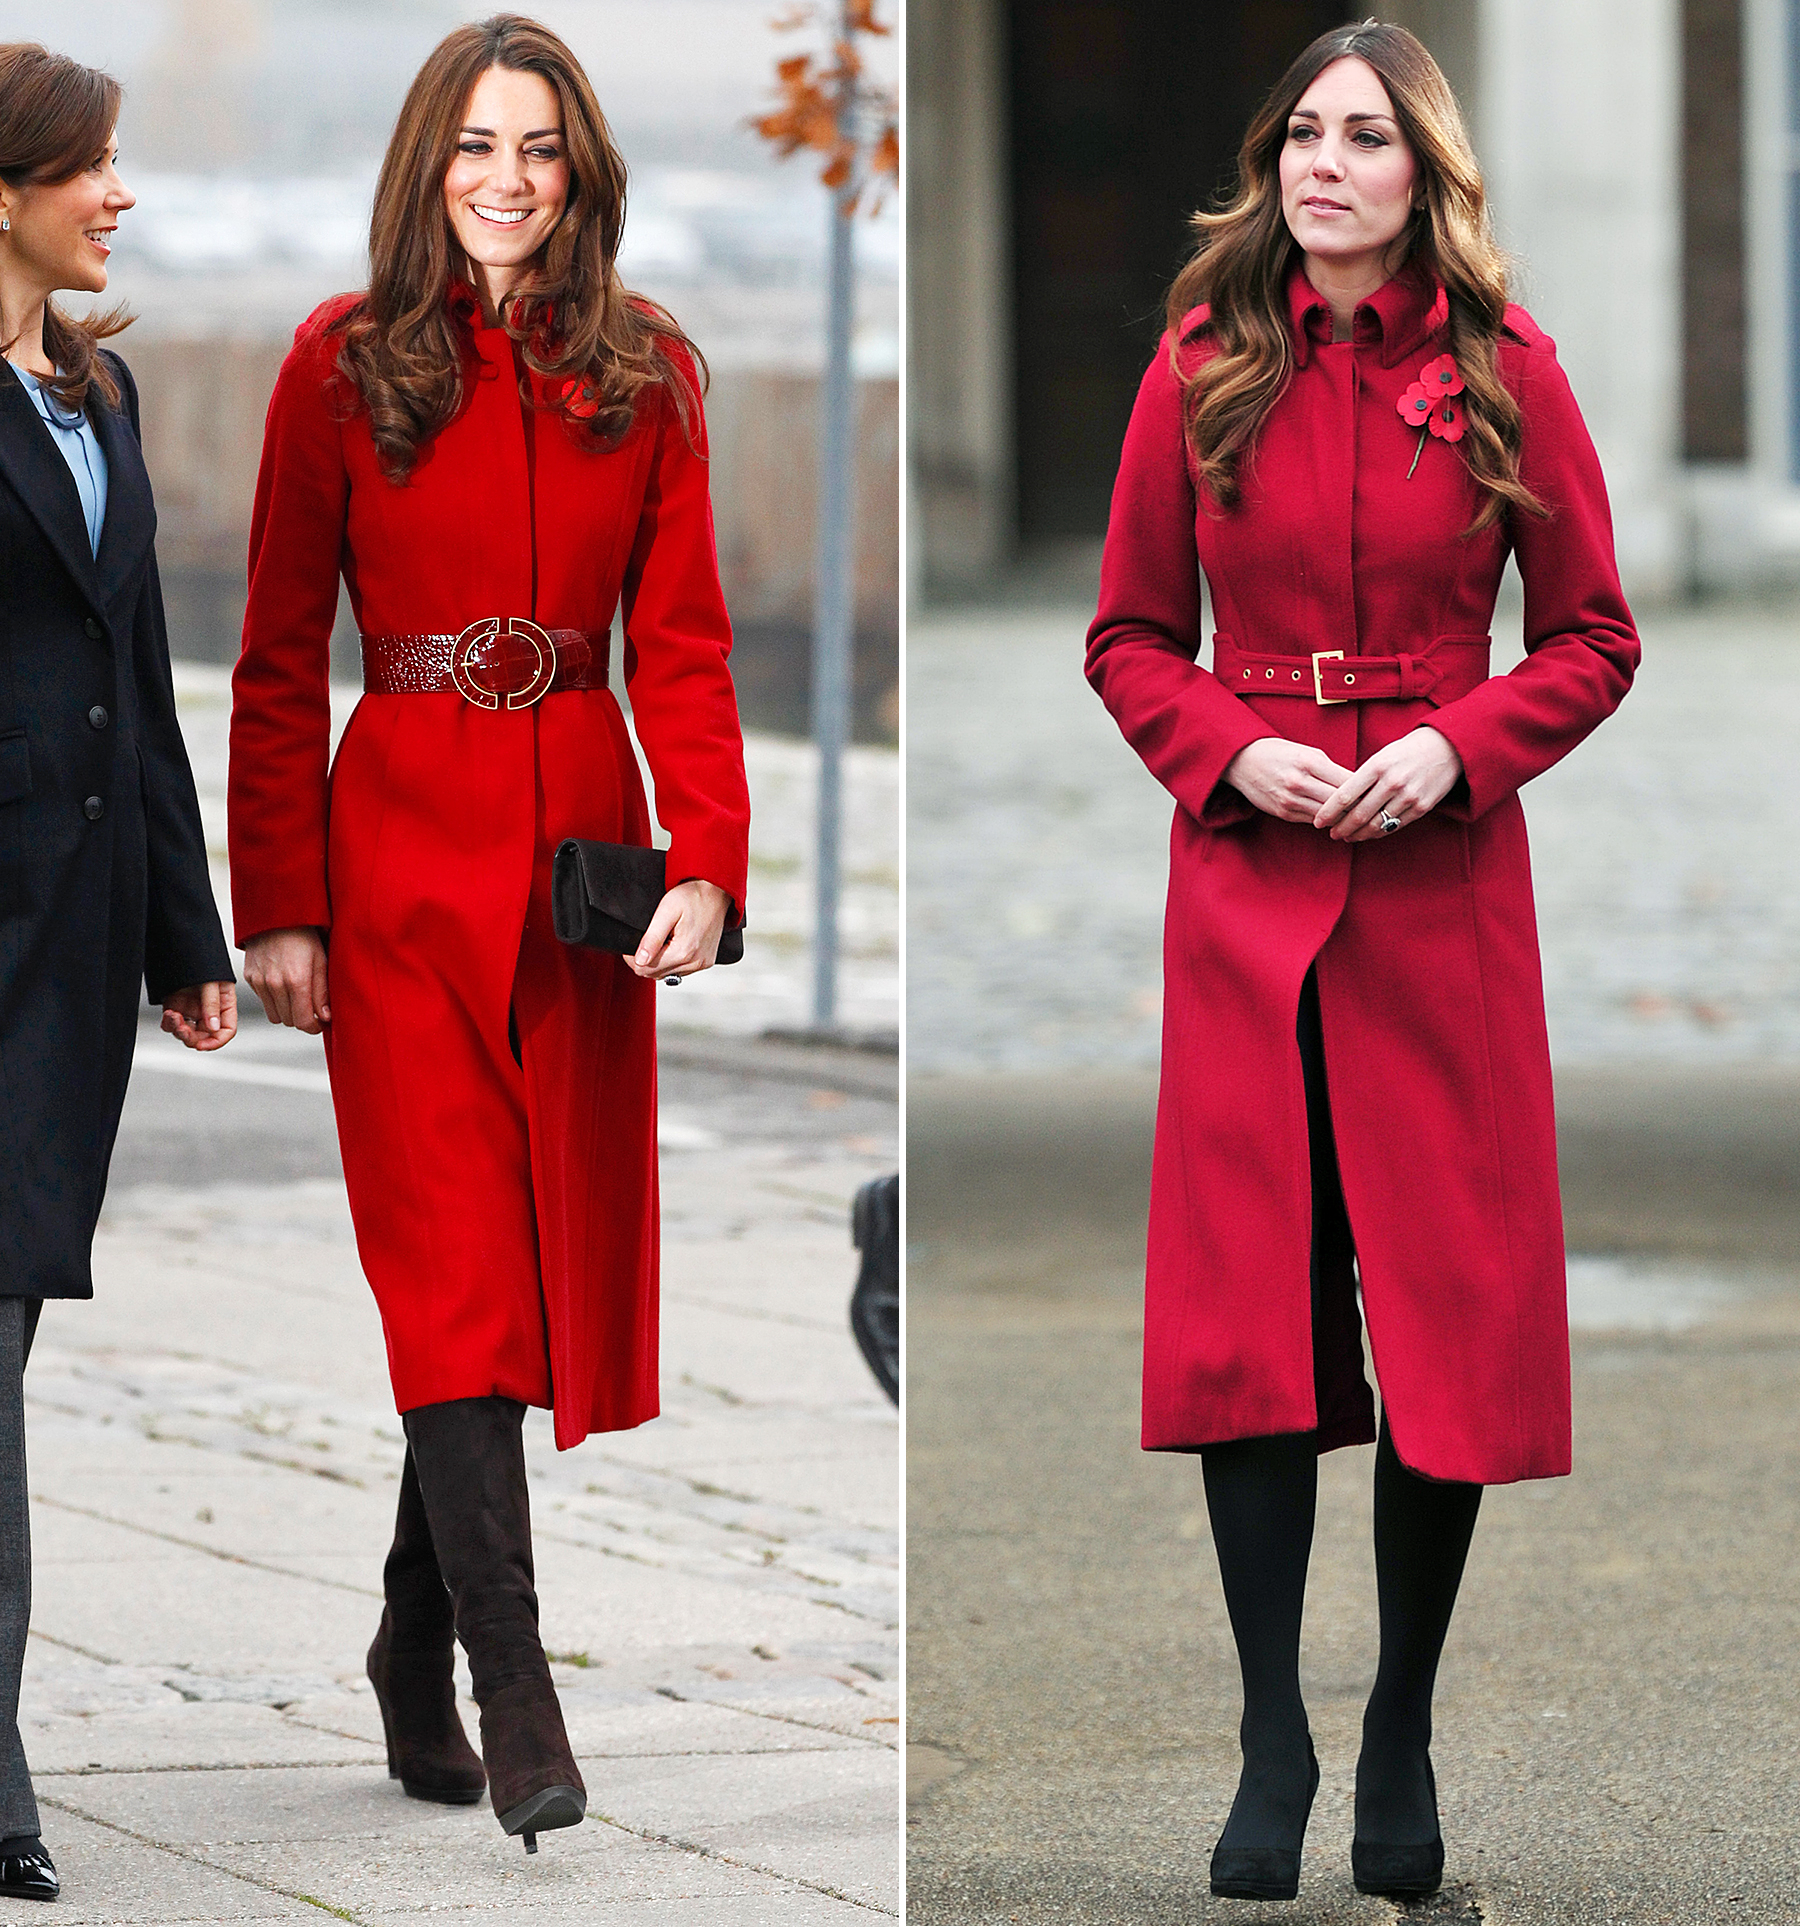 Kate Middleton in 2011 and 2013